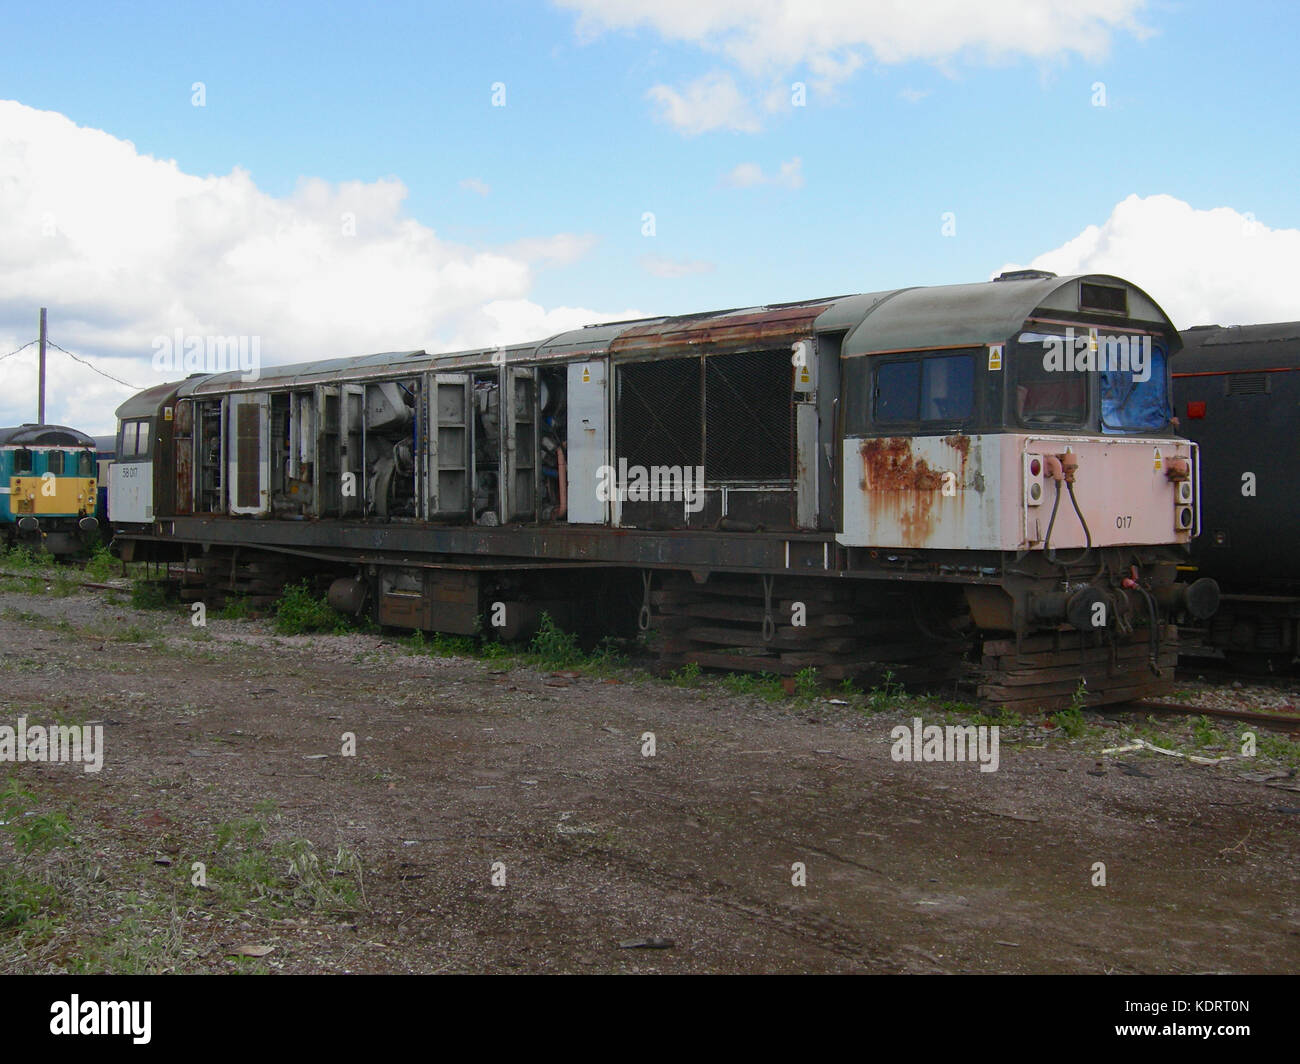 Withdrawn Class 58 locomotive at Eastleigh Depot in 2009 - Stock Image